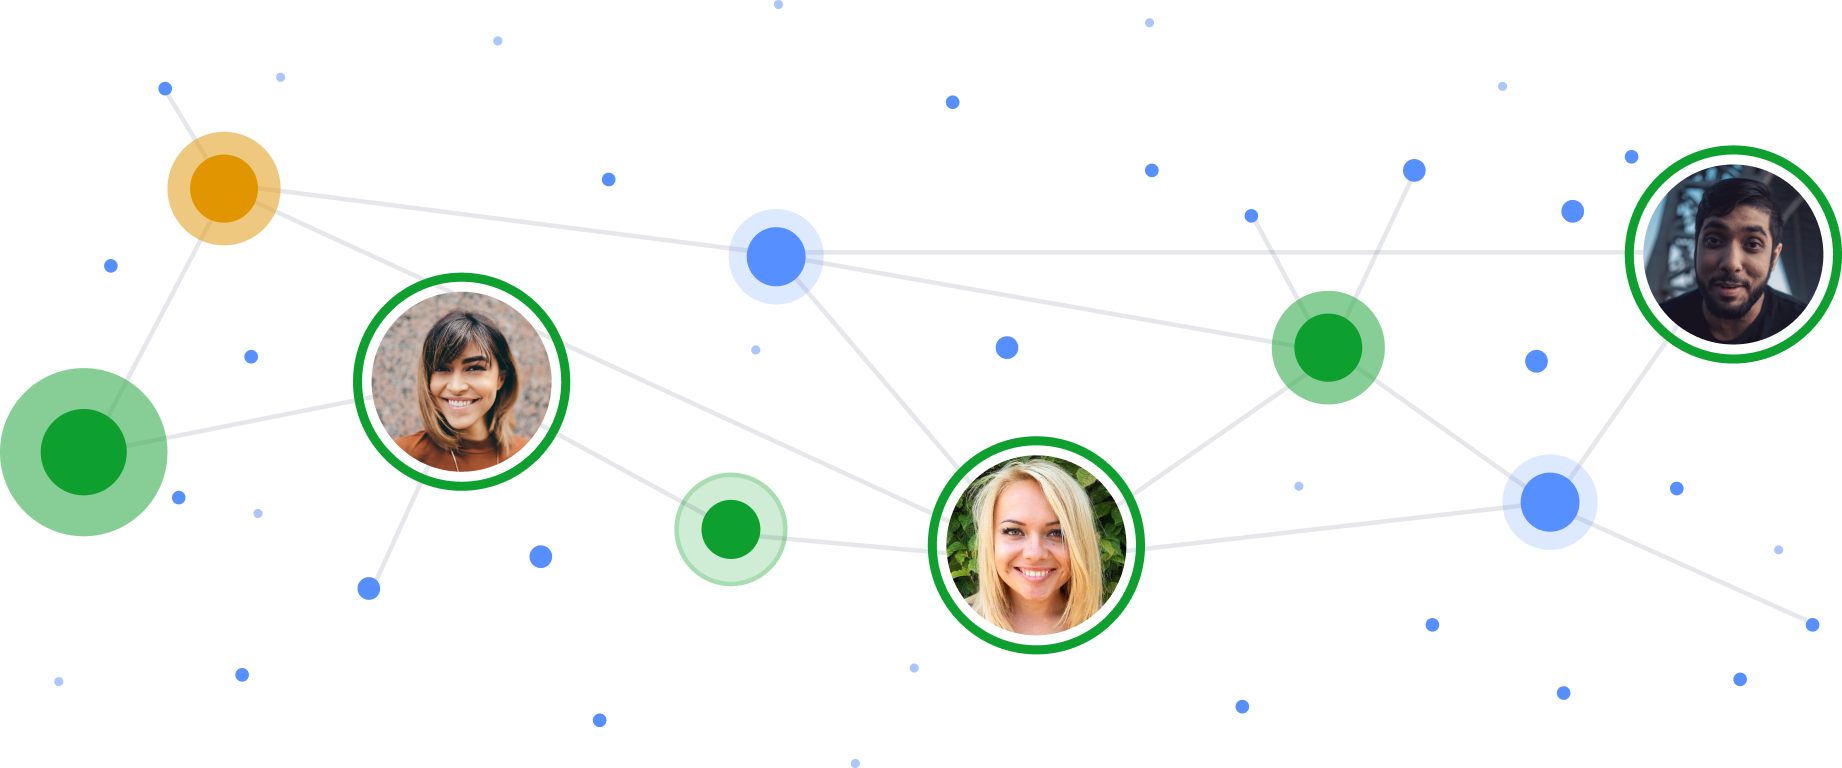 Images of individuals as nodes connected by lines in a stylized network